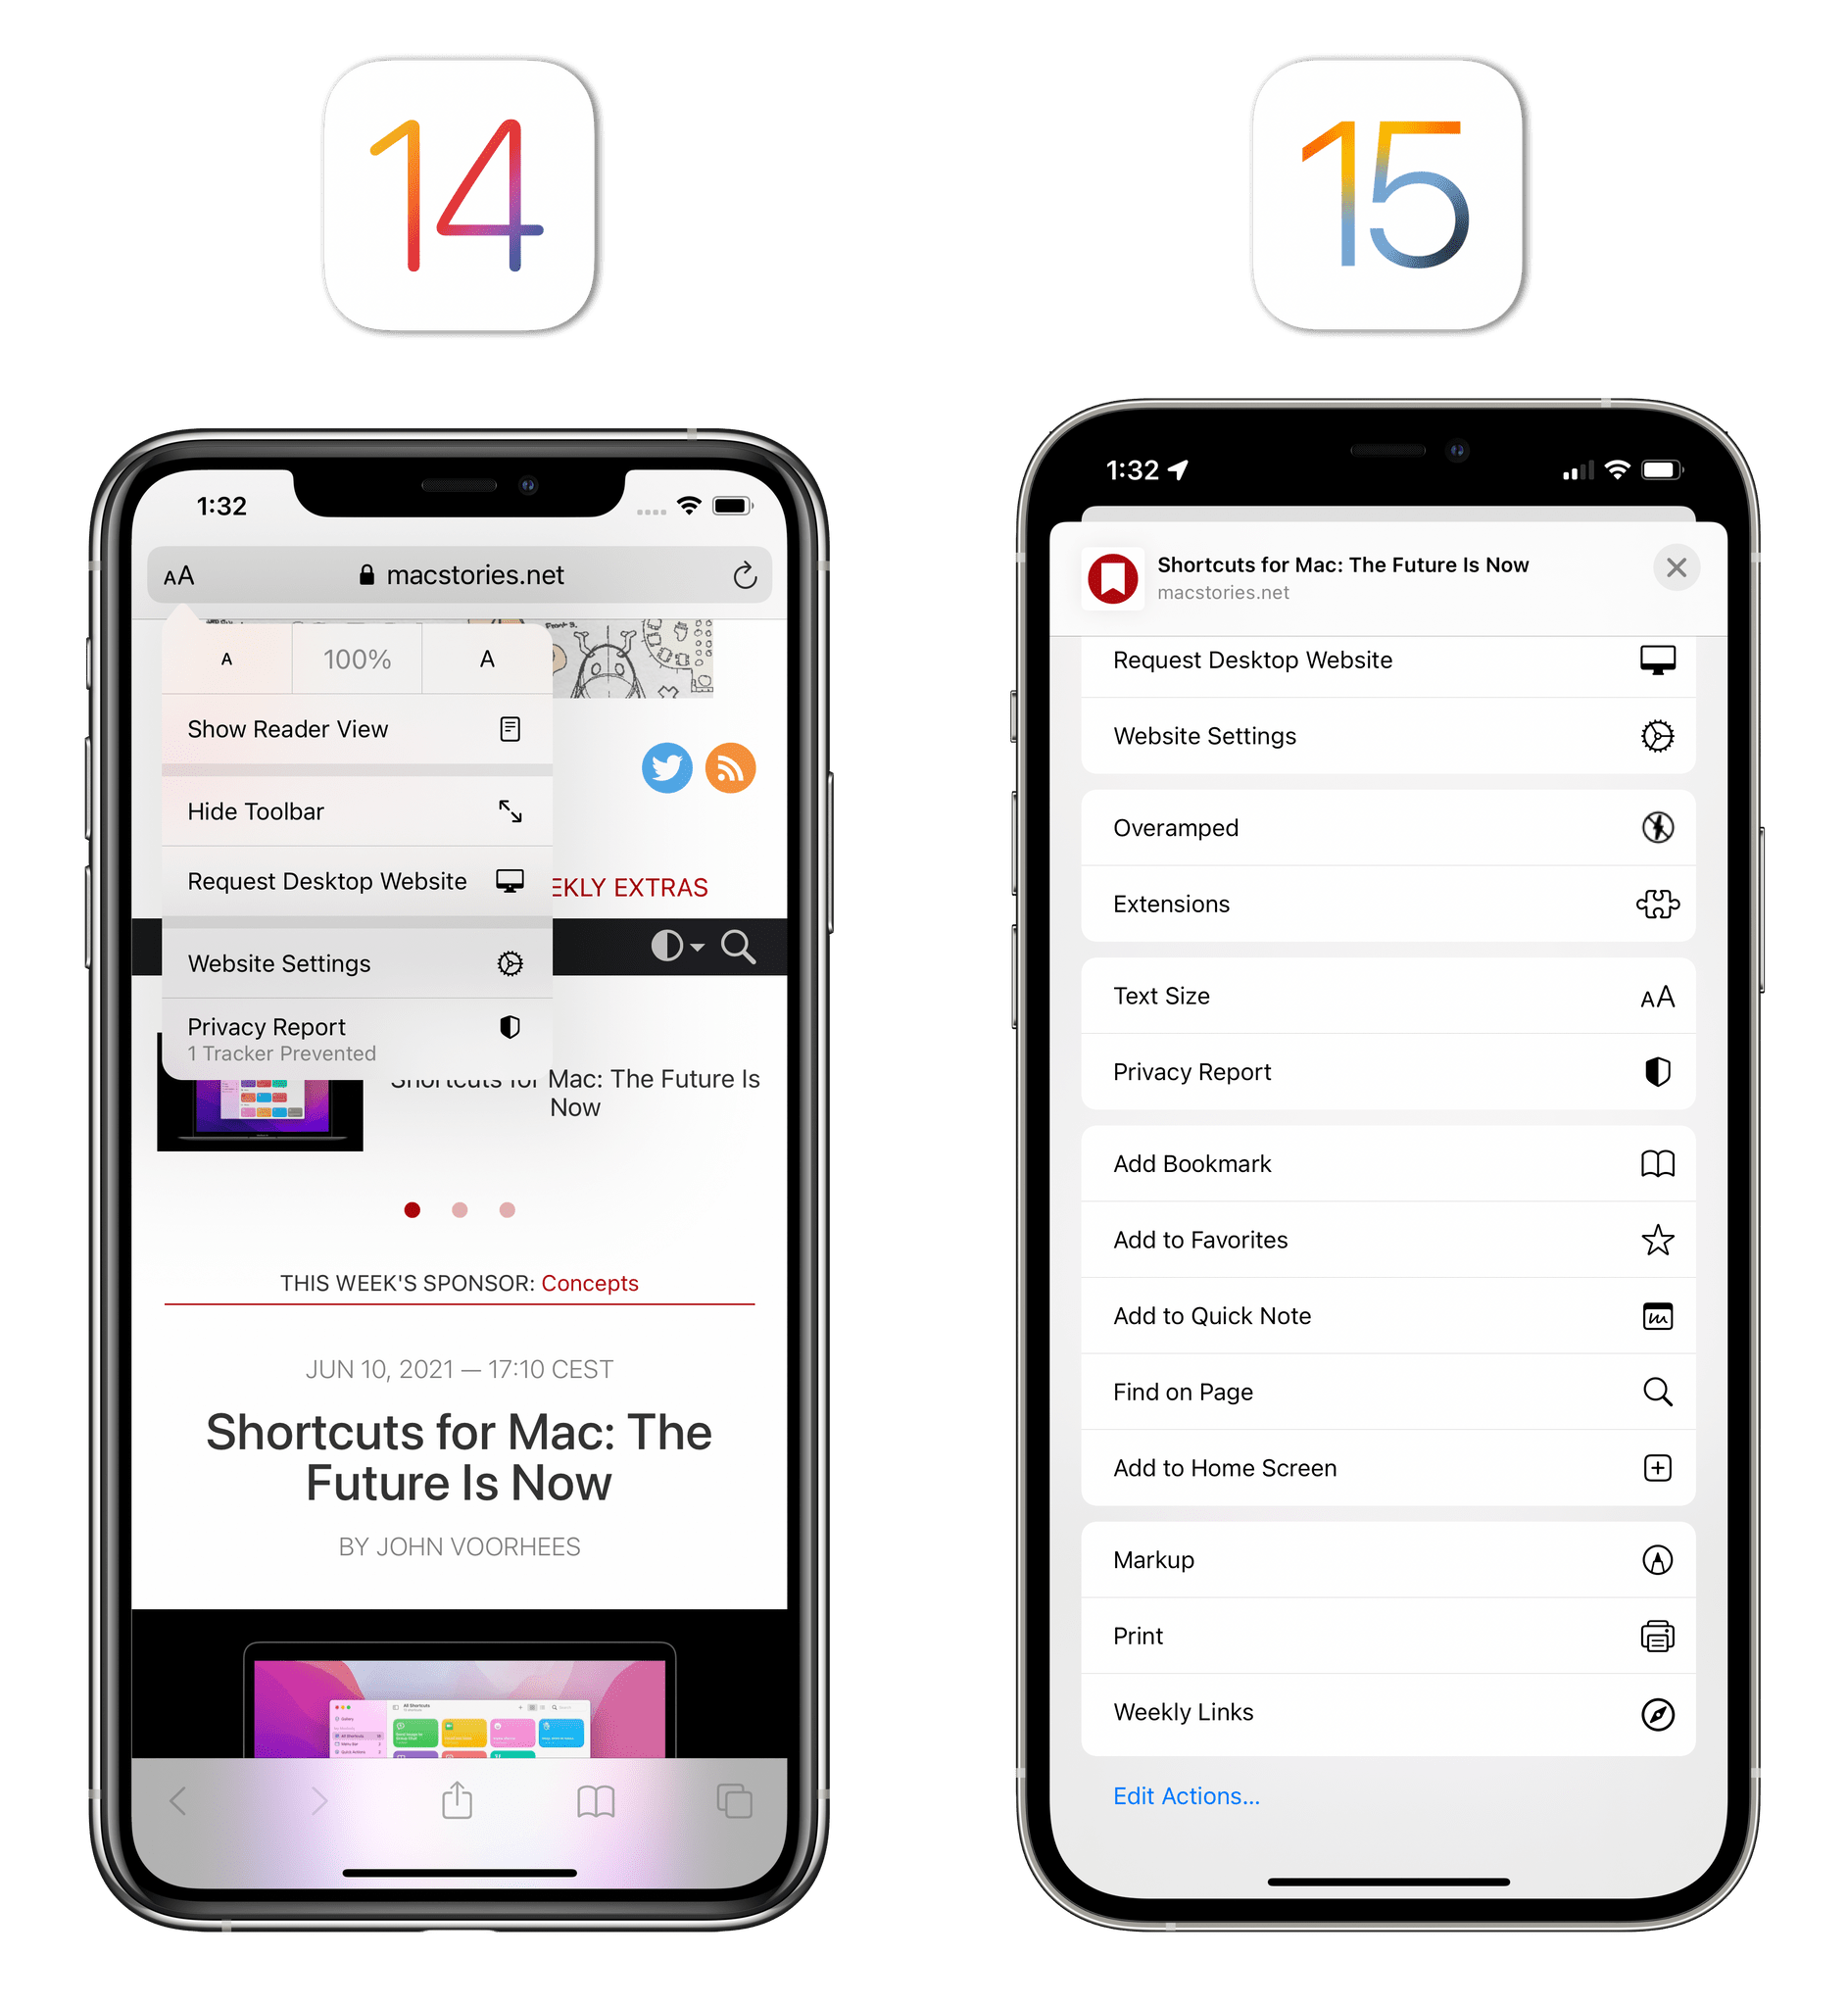 One of the downsides of removing buttons from the new Safari: options that used to be accessible with one tap are now hidden in a long menu.